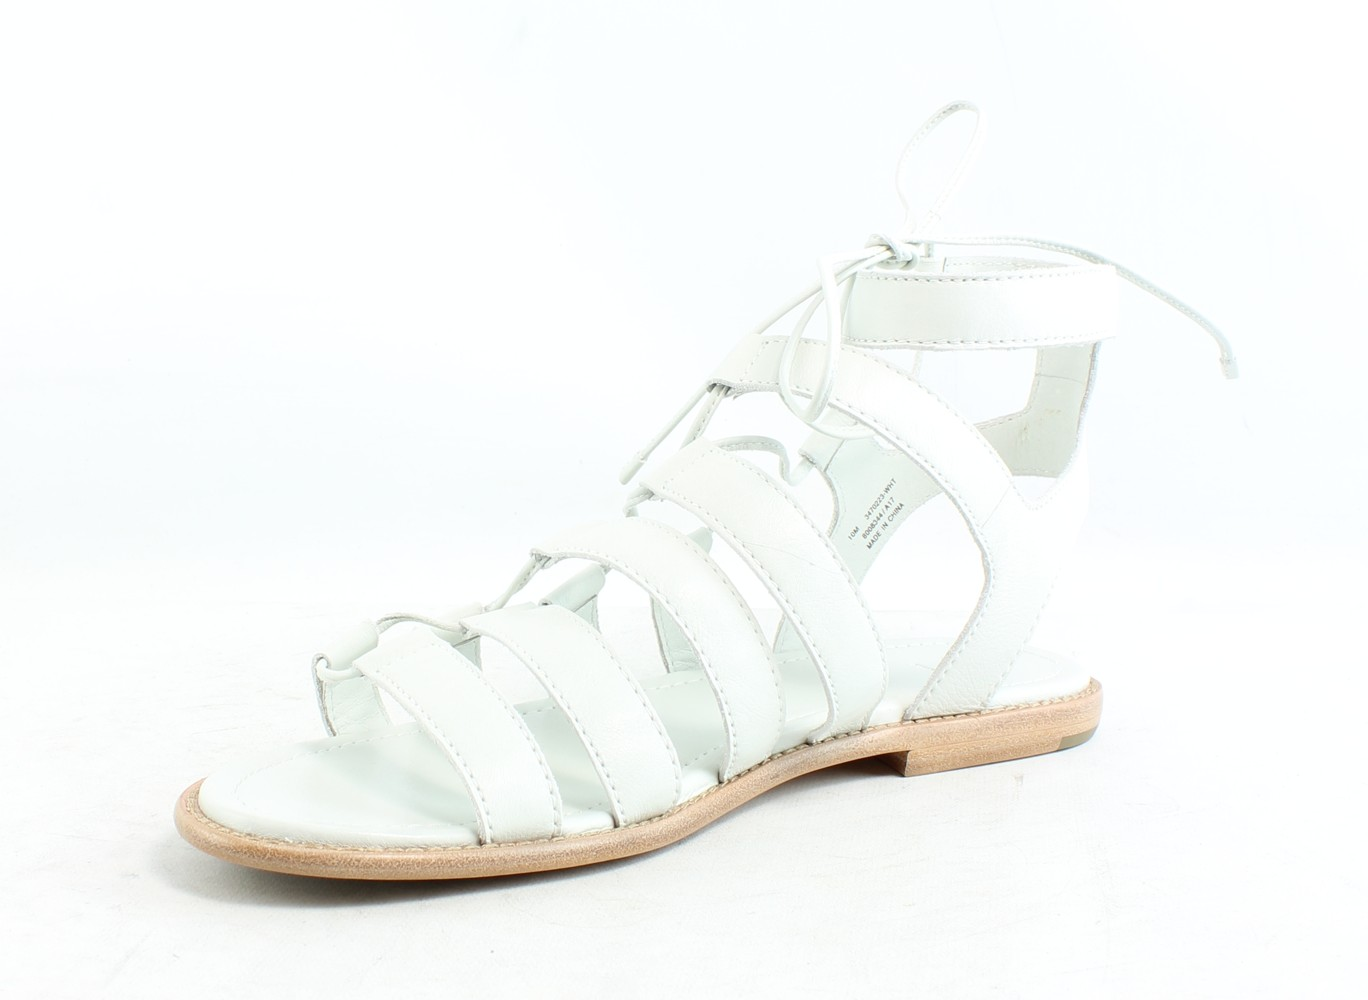 Frye-Womens-Blair-Side-Ghillie-Gladiators-Leather-Sandals thumbnail 11